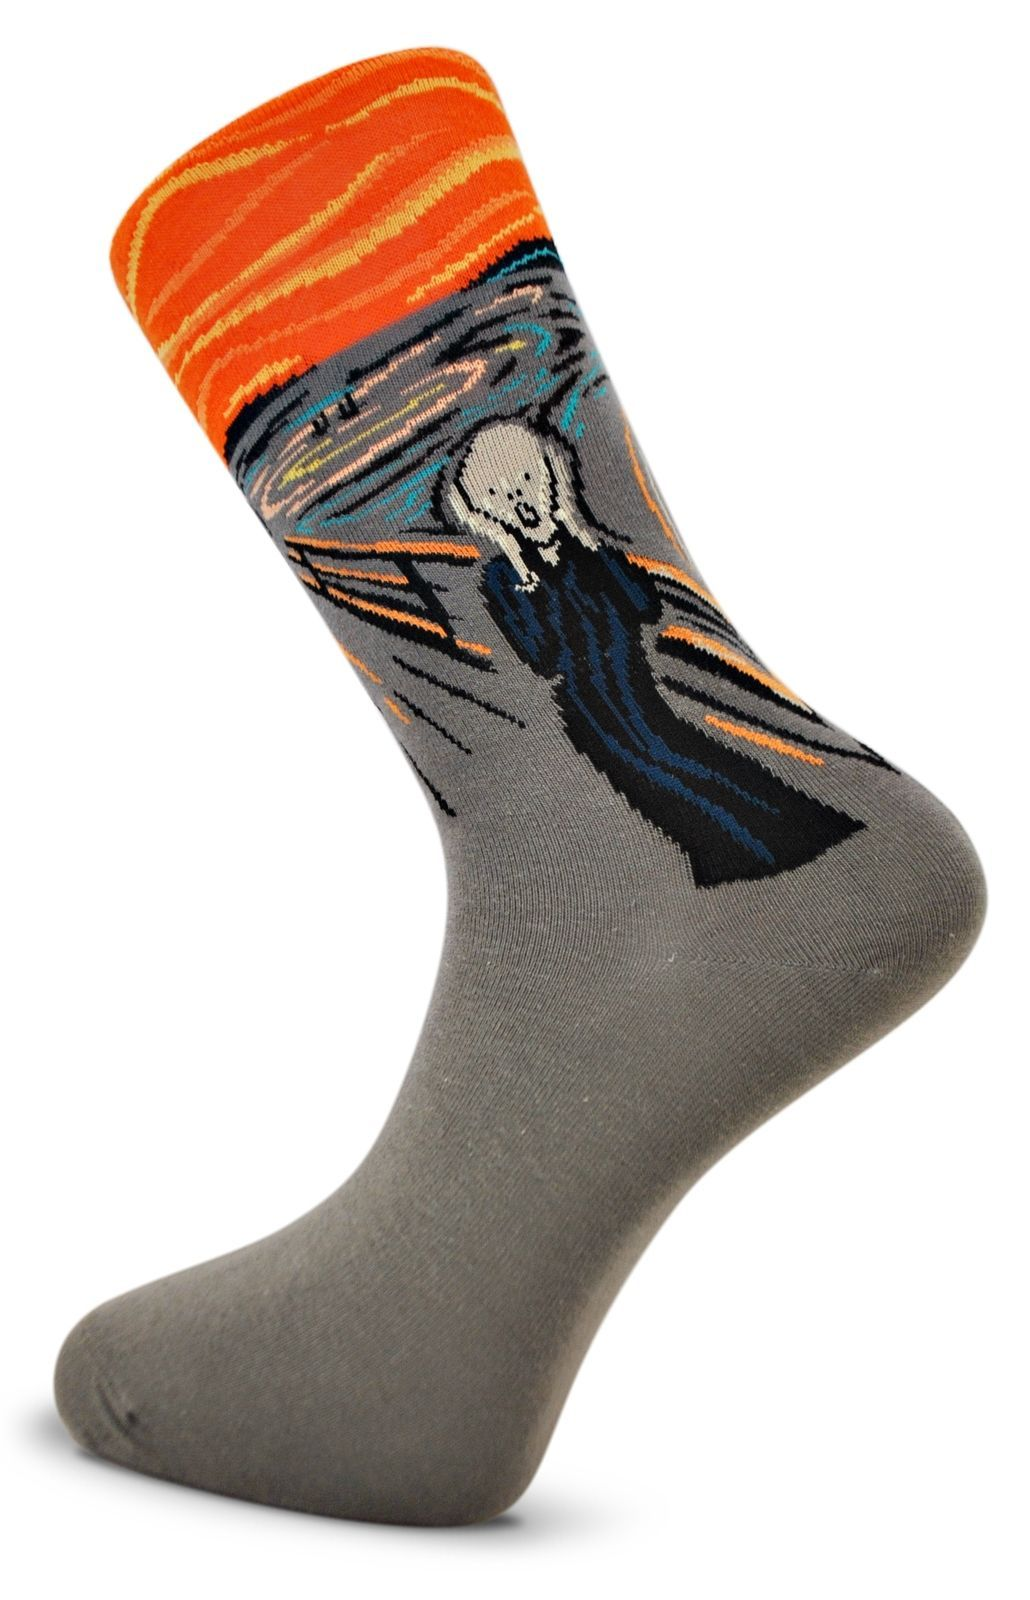 Grey Mens Socks with Edvard Munch The Scream design by Frederick Thomas